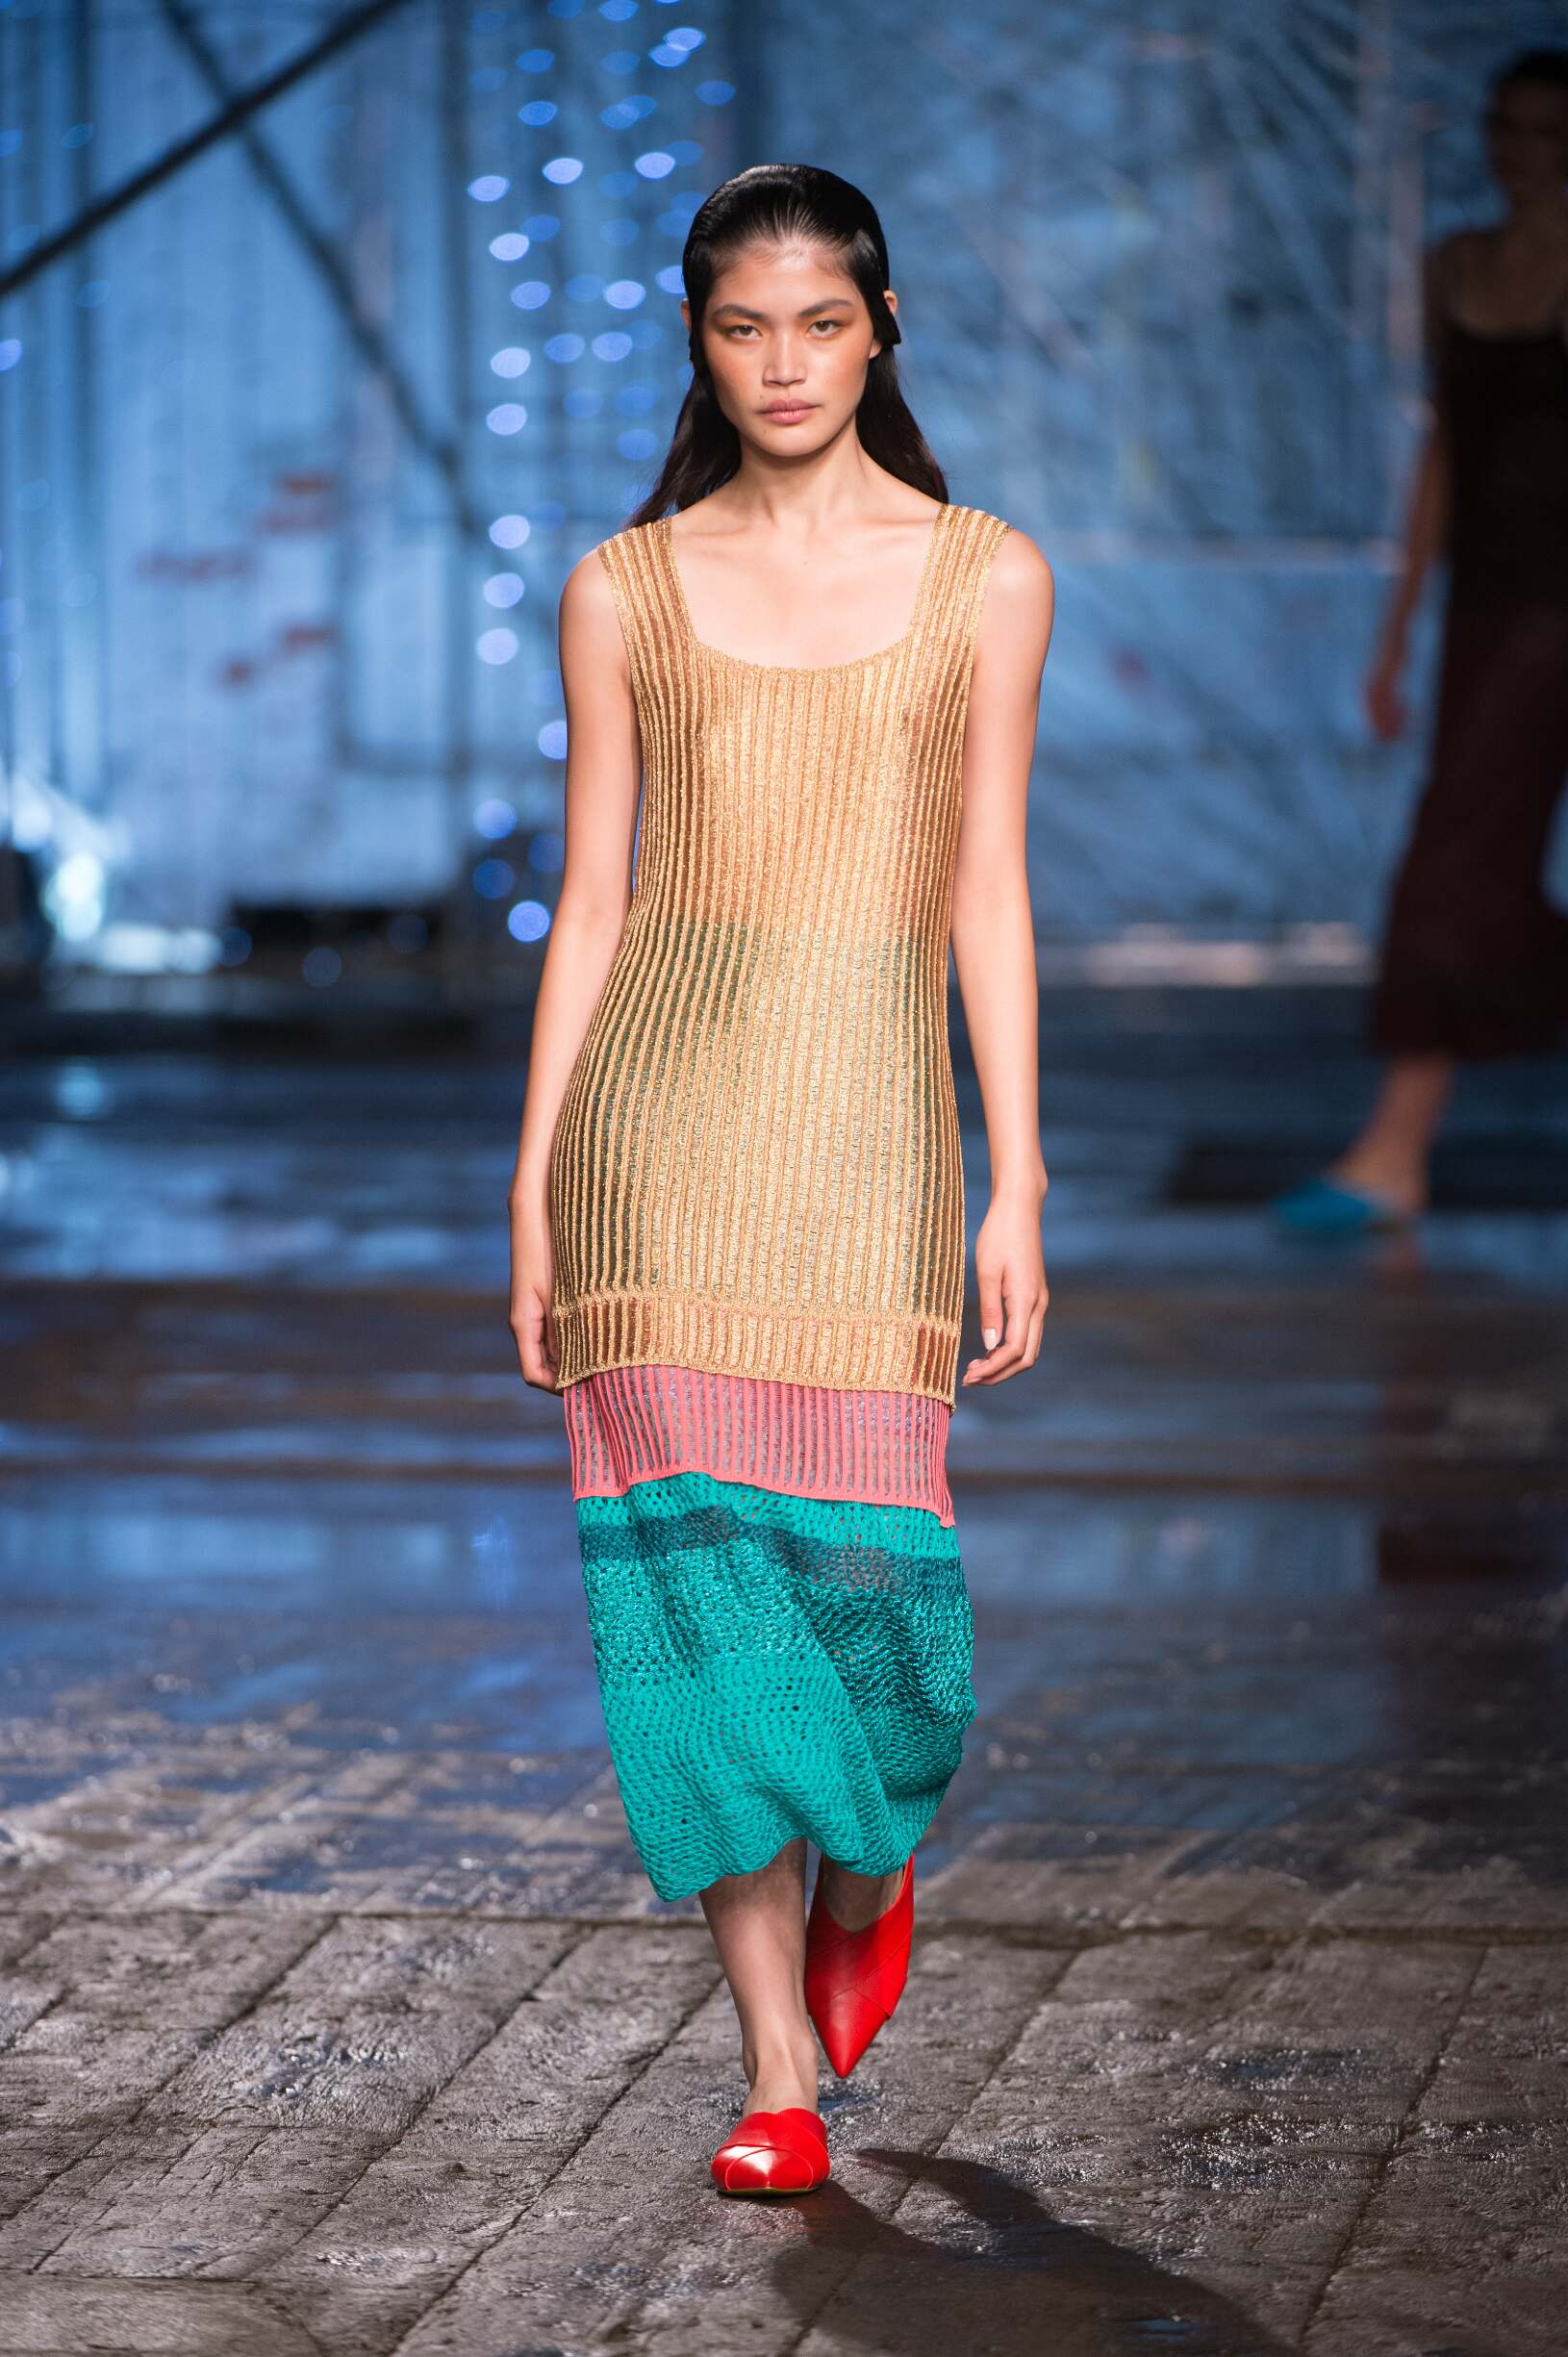 MISSONI SPRING SUMMER 2017 WOMEN'S COLLECTION